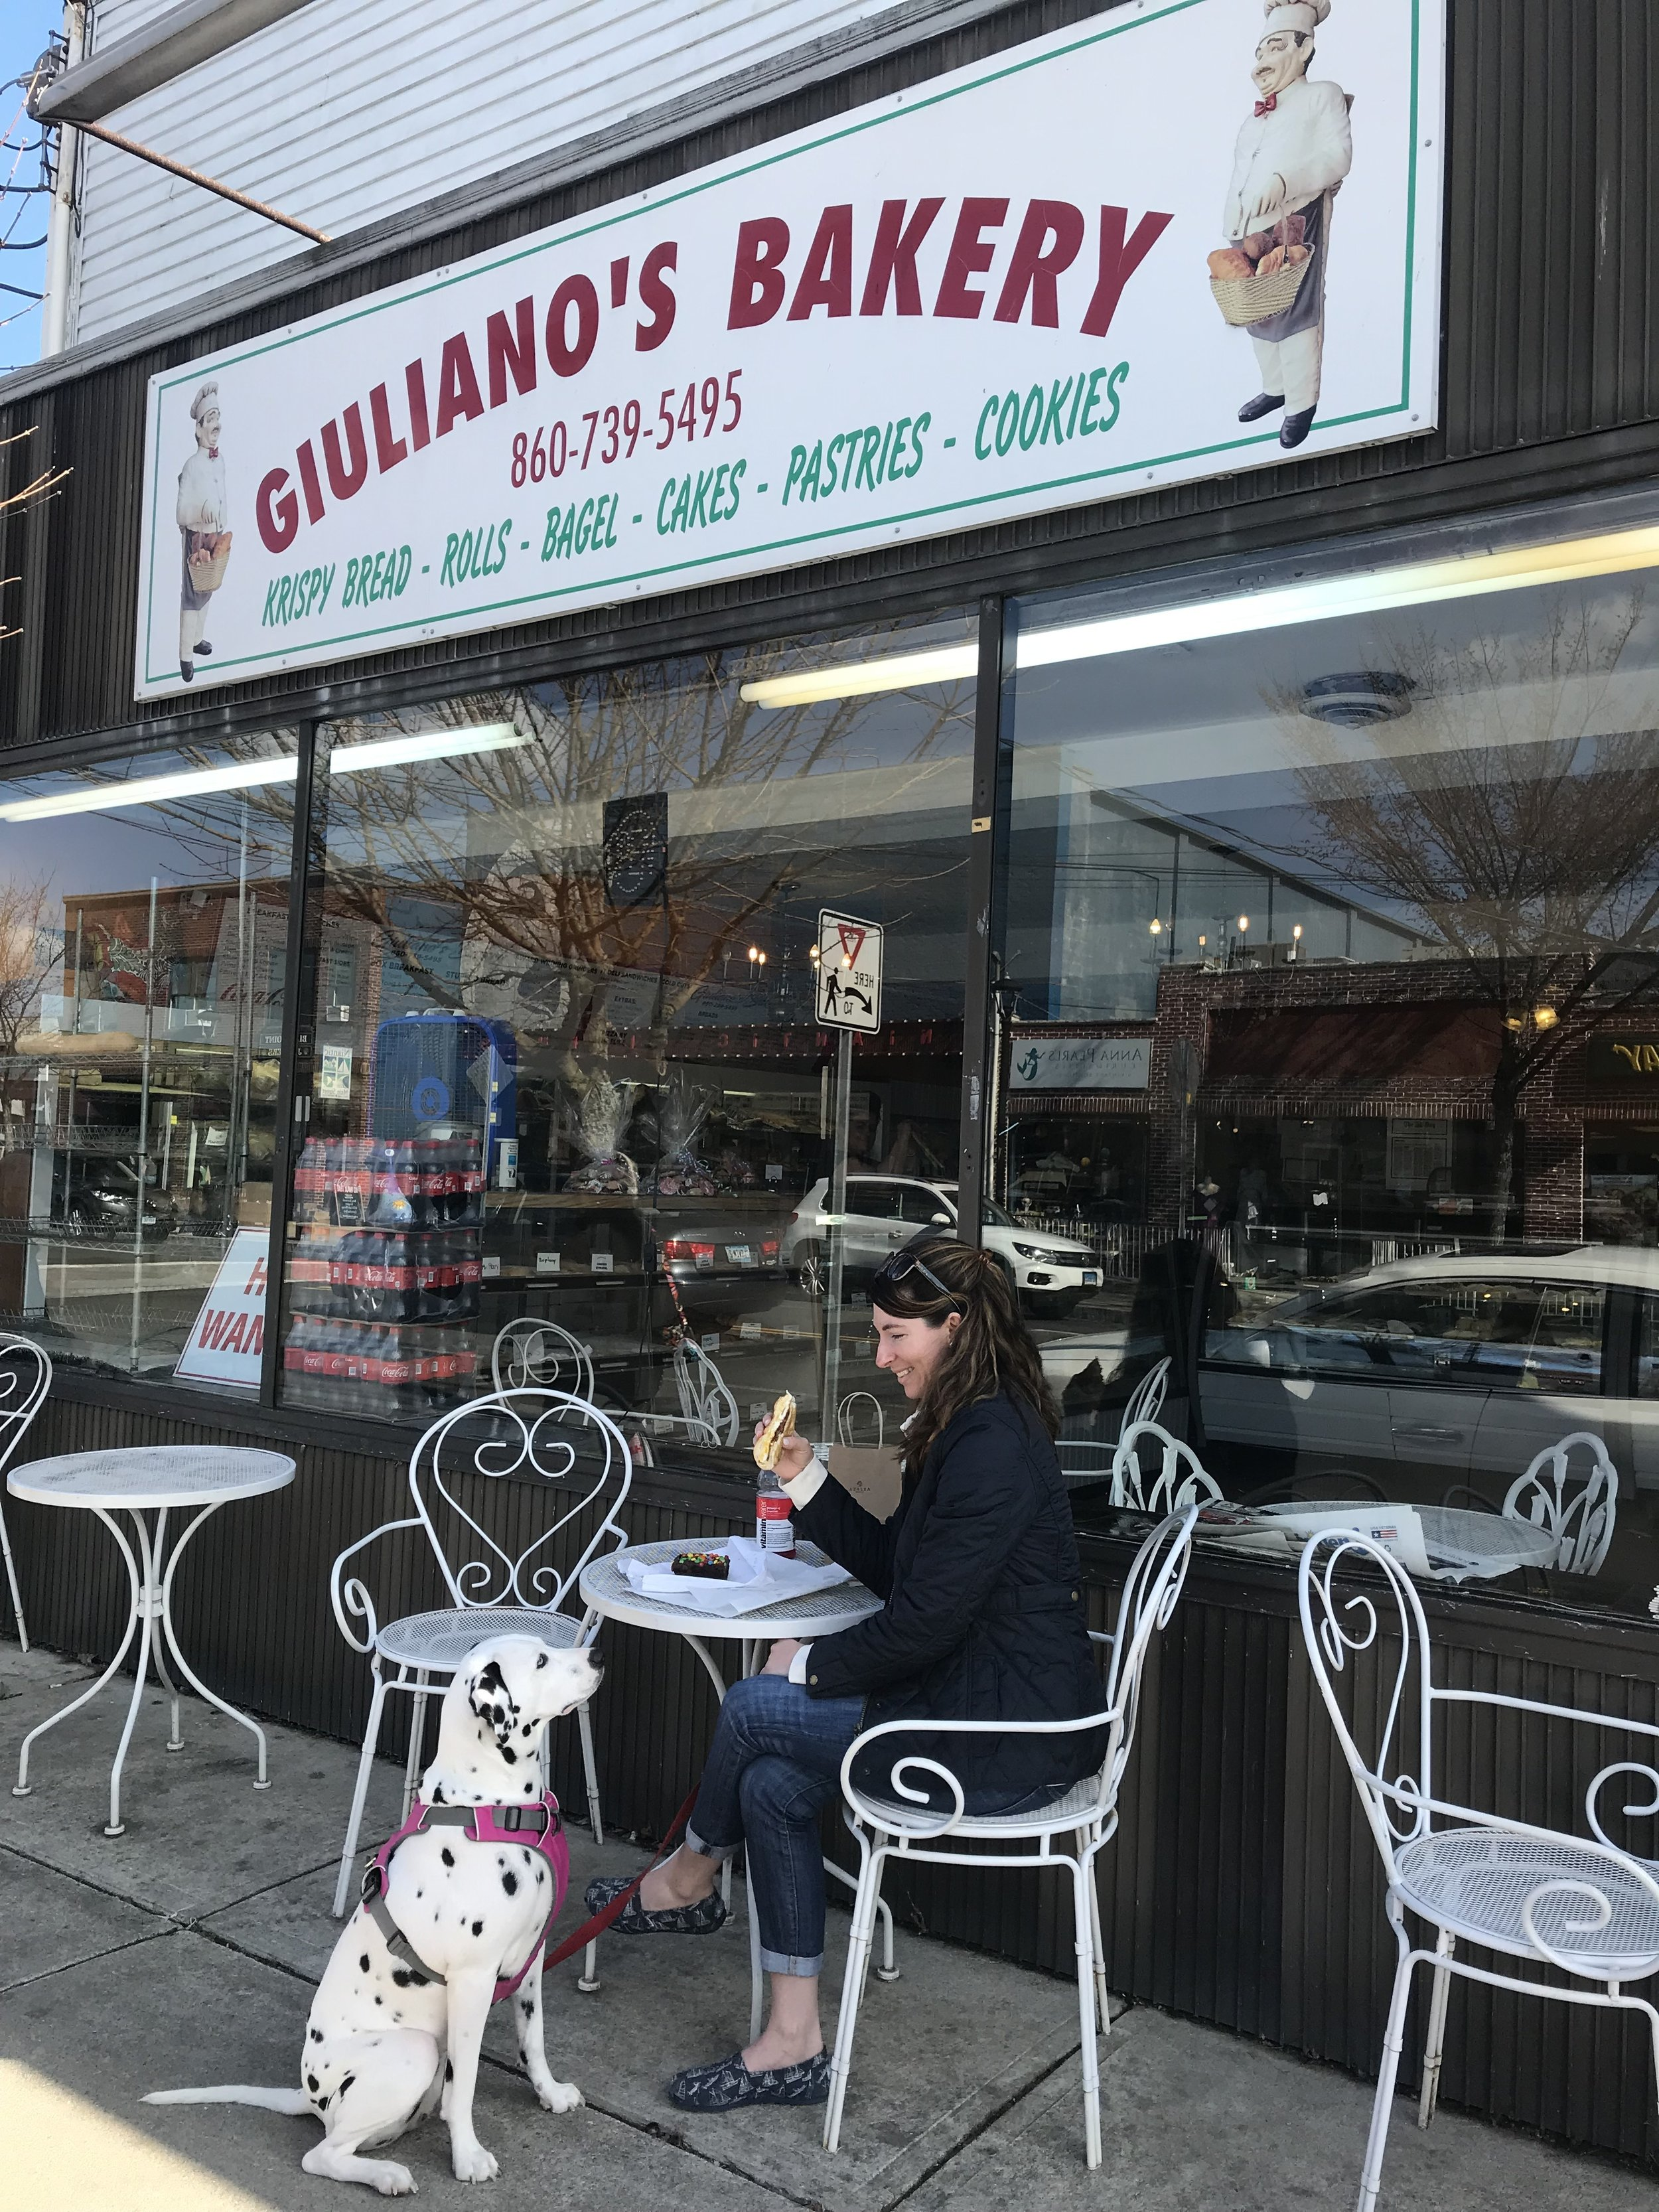 Lunch at Giuliano's bakery. My pup wants some of my egg sandwich!